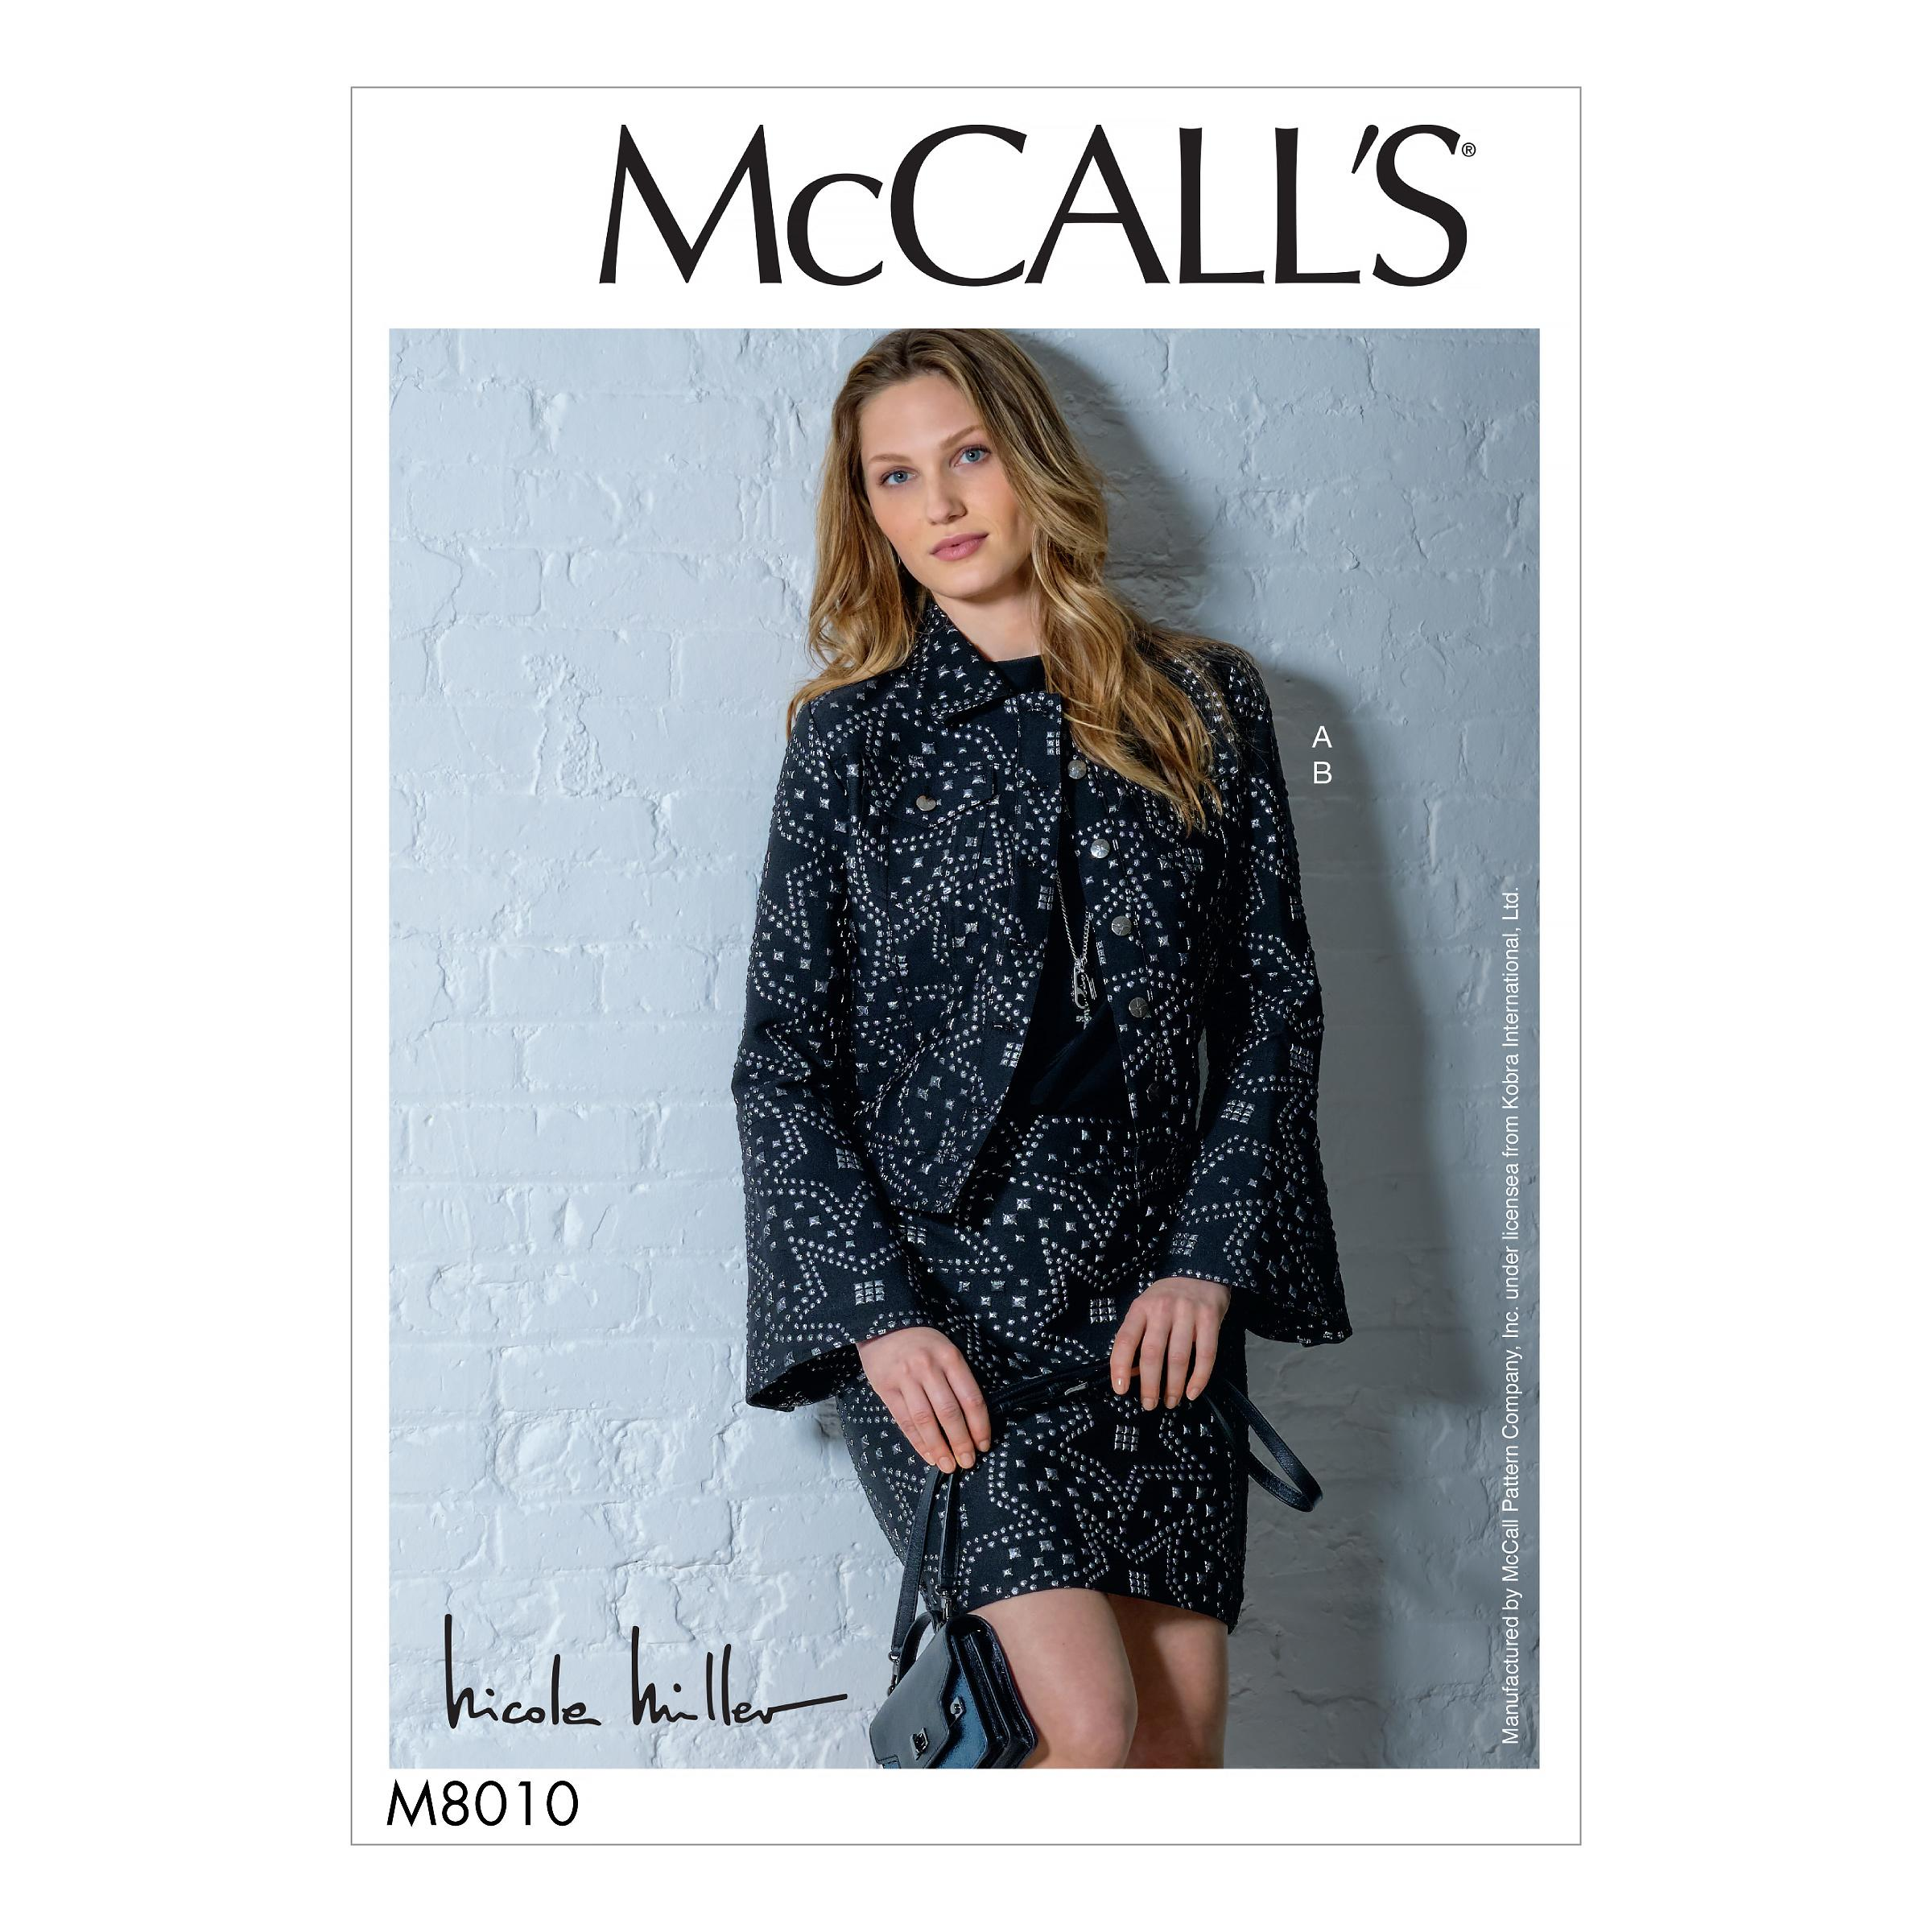 McCalls M8010 Misses Skirts, Misses Jackets & Vests, Misses Coordinates